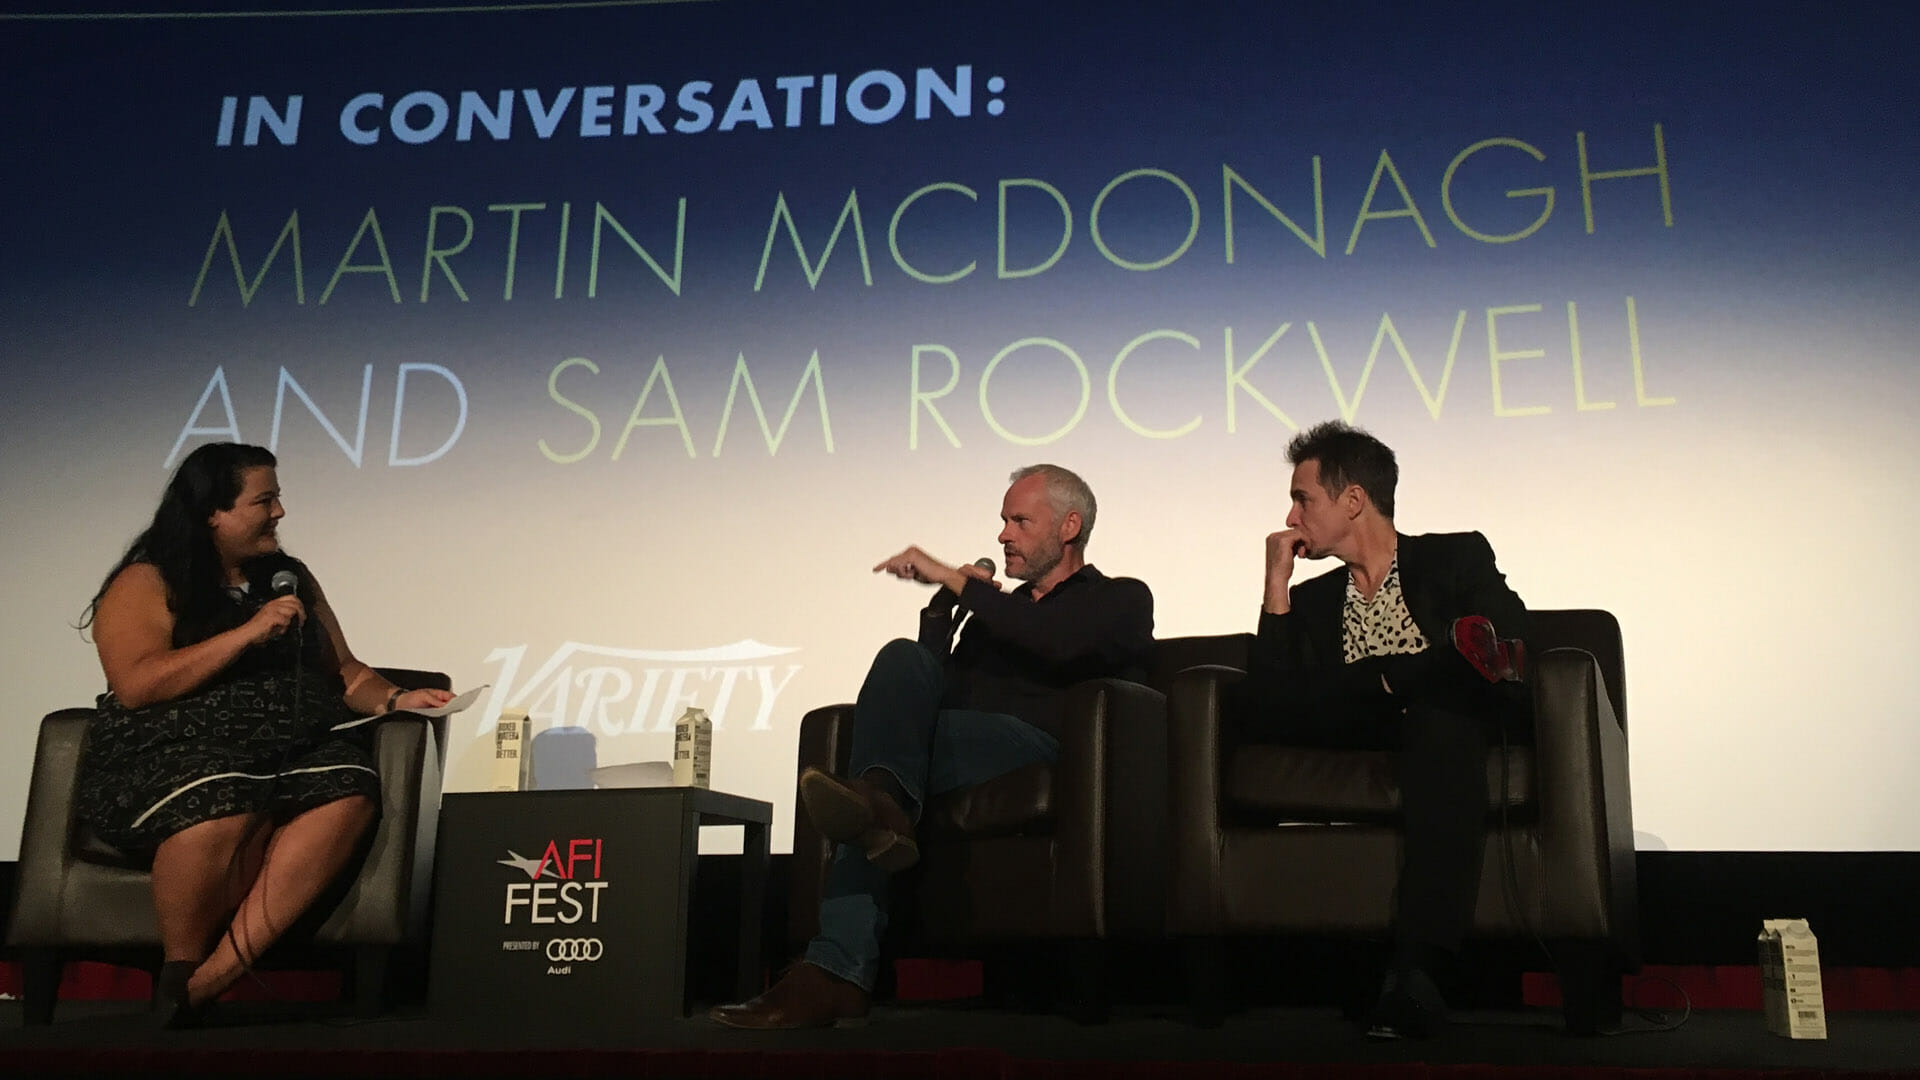 Screenwriting Lessons From Martin McDonagh and Sam Rockwell